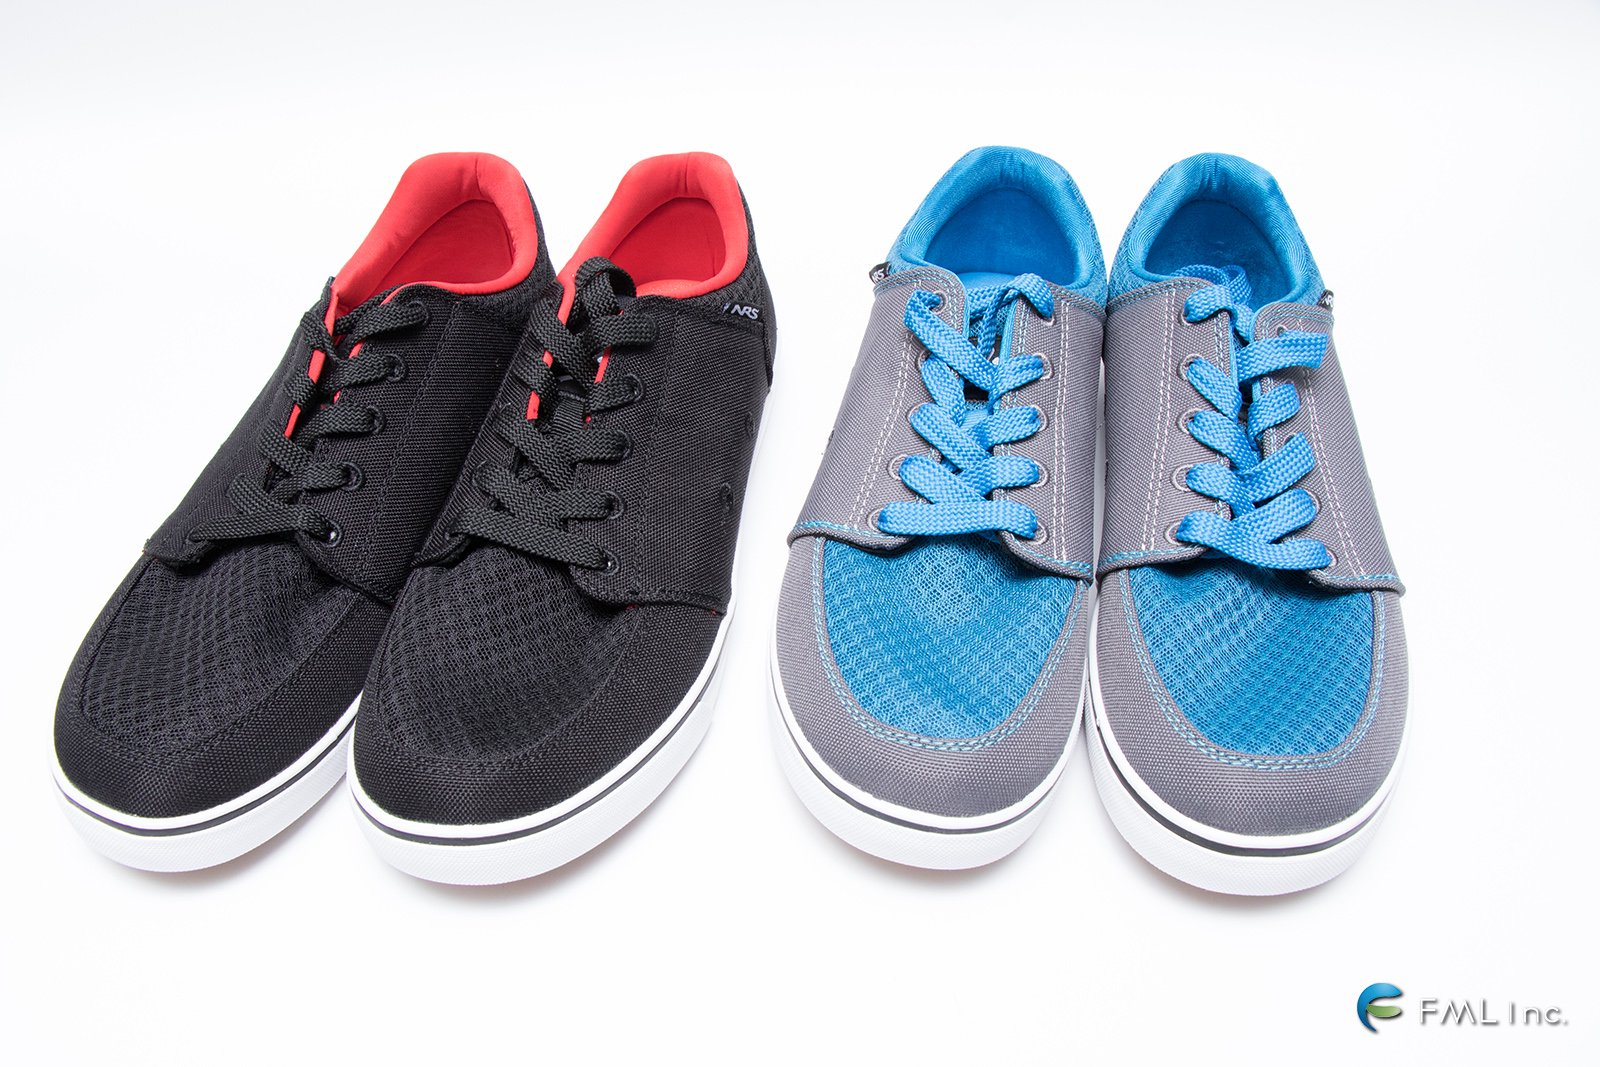 <img class='new_mark_img1' src='https://img.shop-pro.jp/img/new/icons5.gif' style='border:none;display:inline;margin:0px;padding:0px;width:auto;' />NRS Men's Vibe Water Shoe